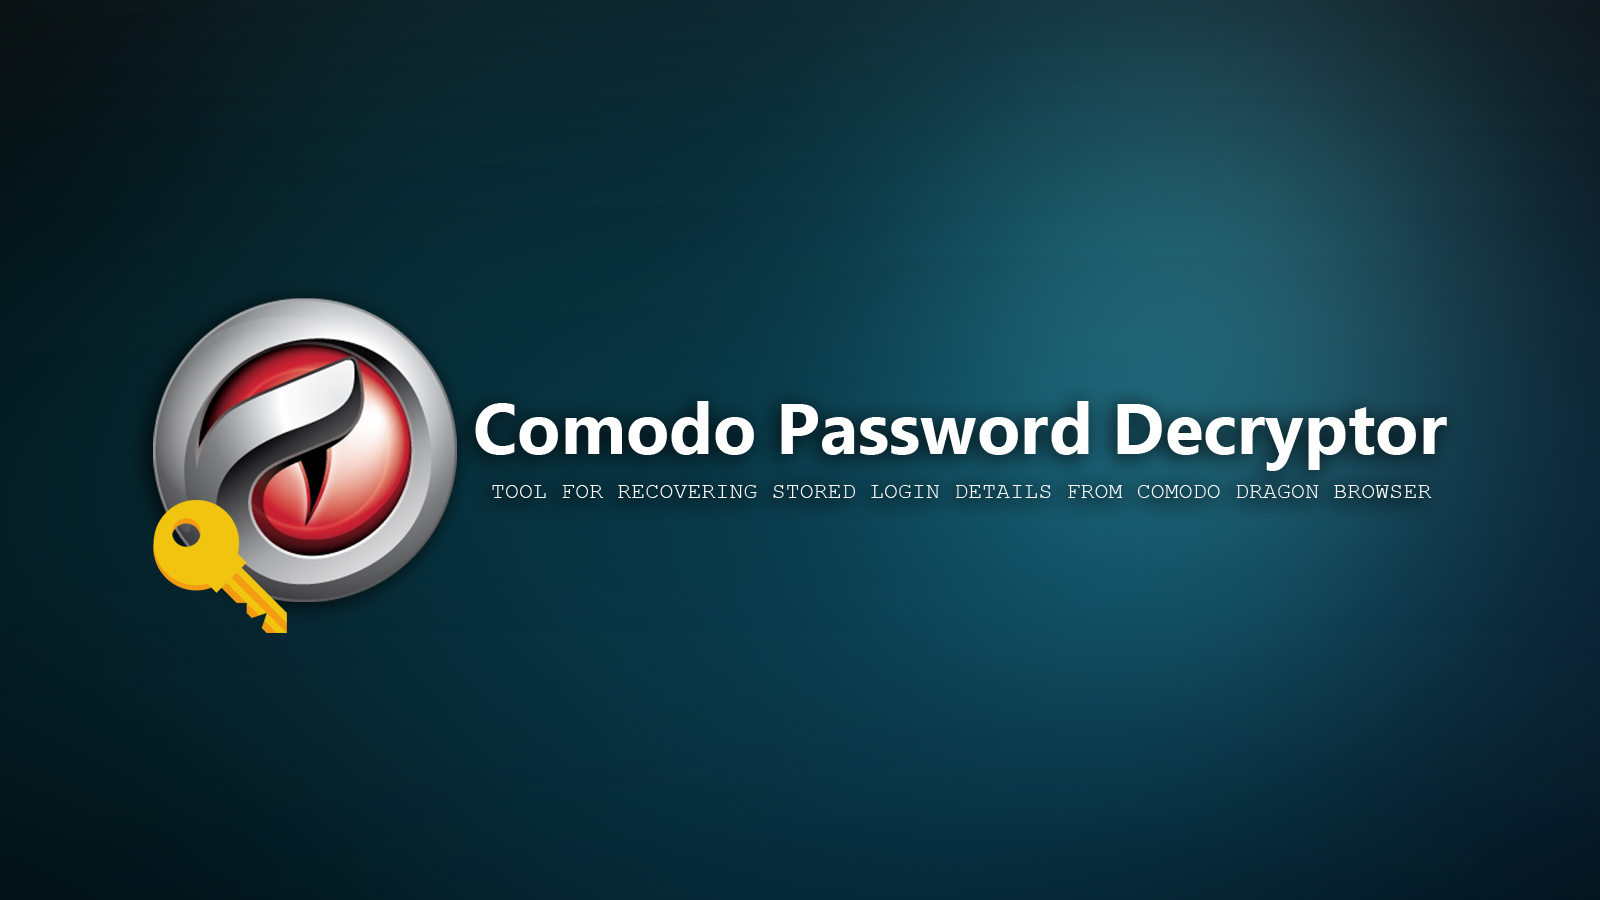 Comodo Password Decryptor